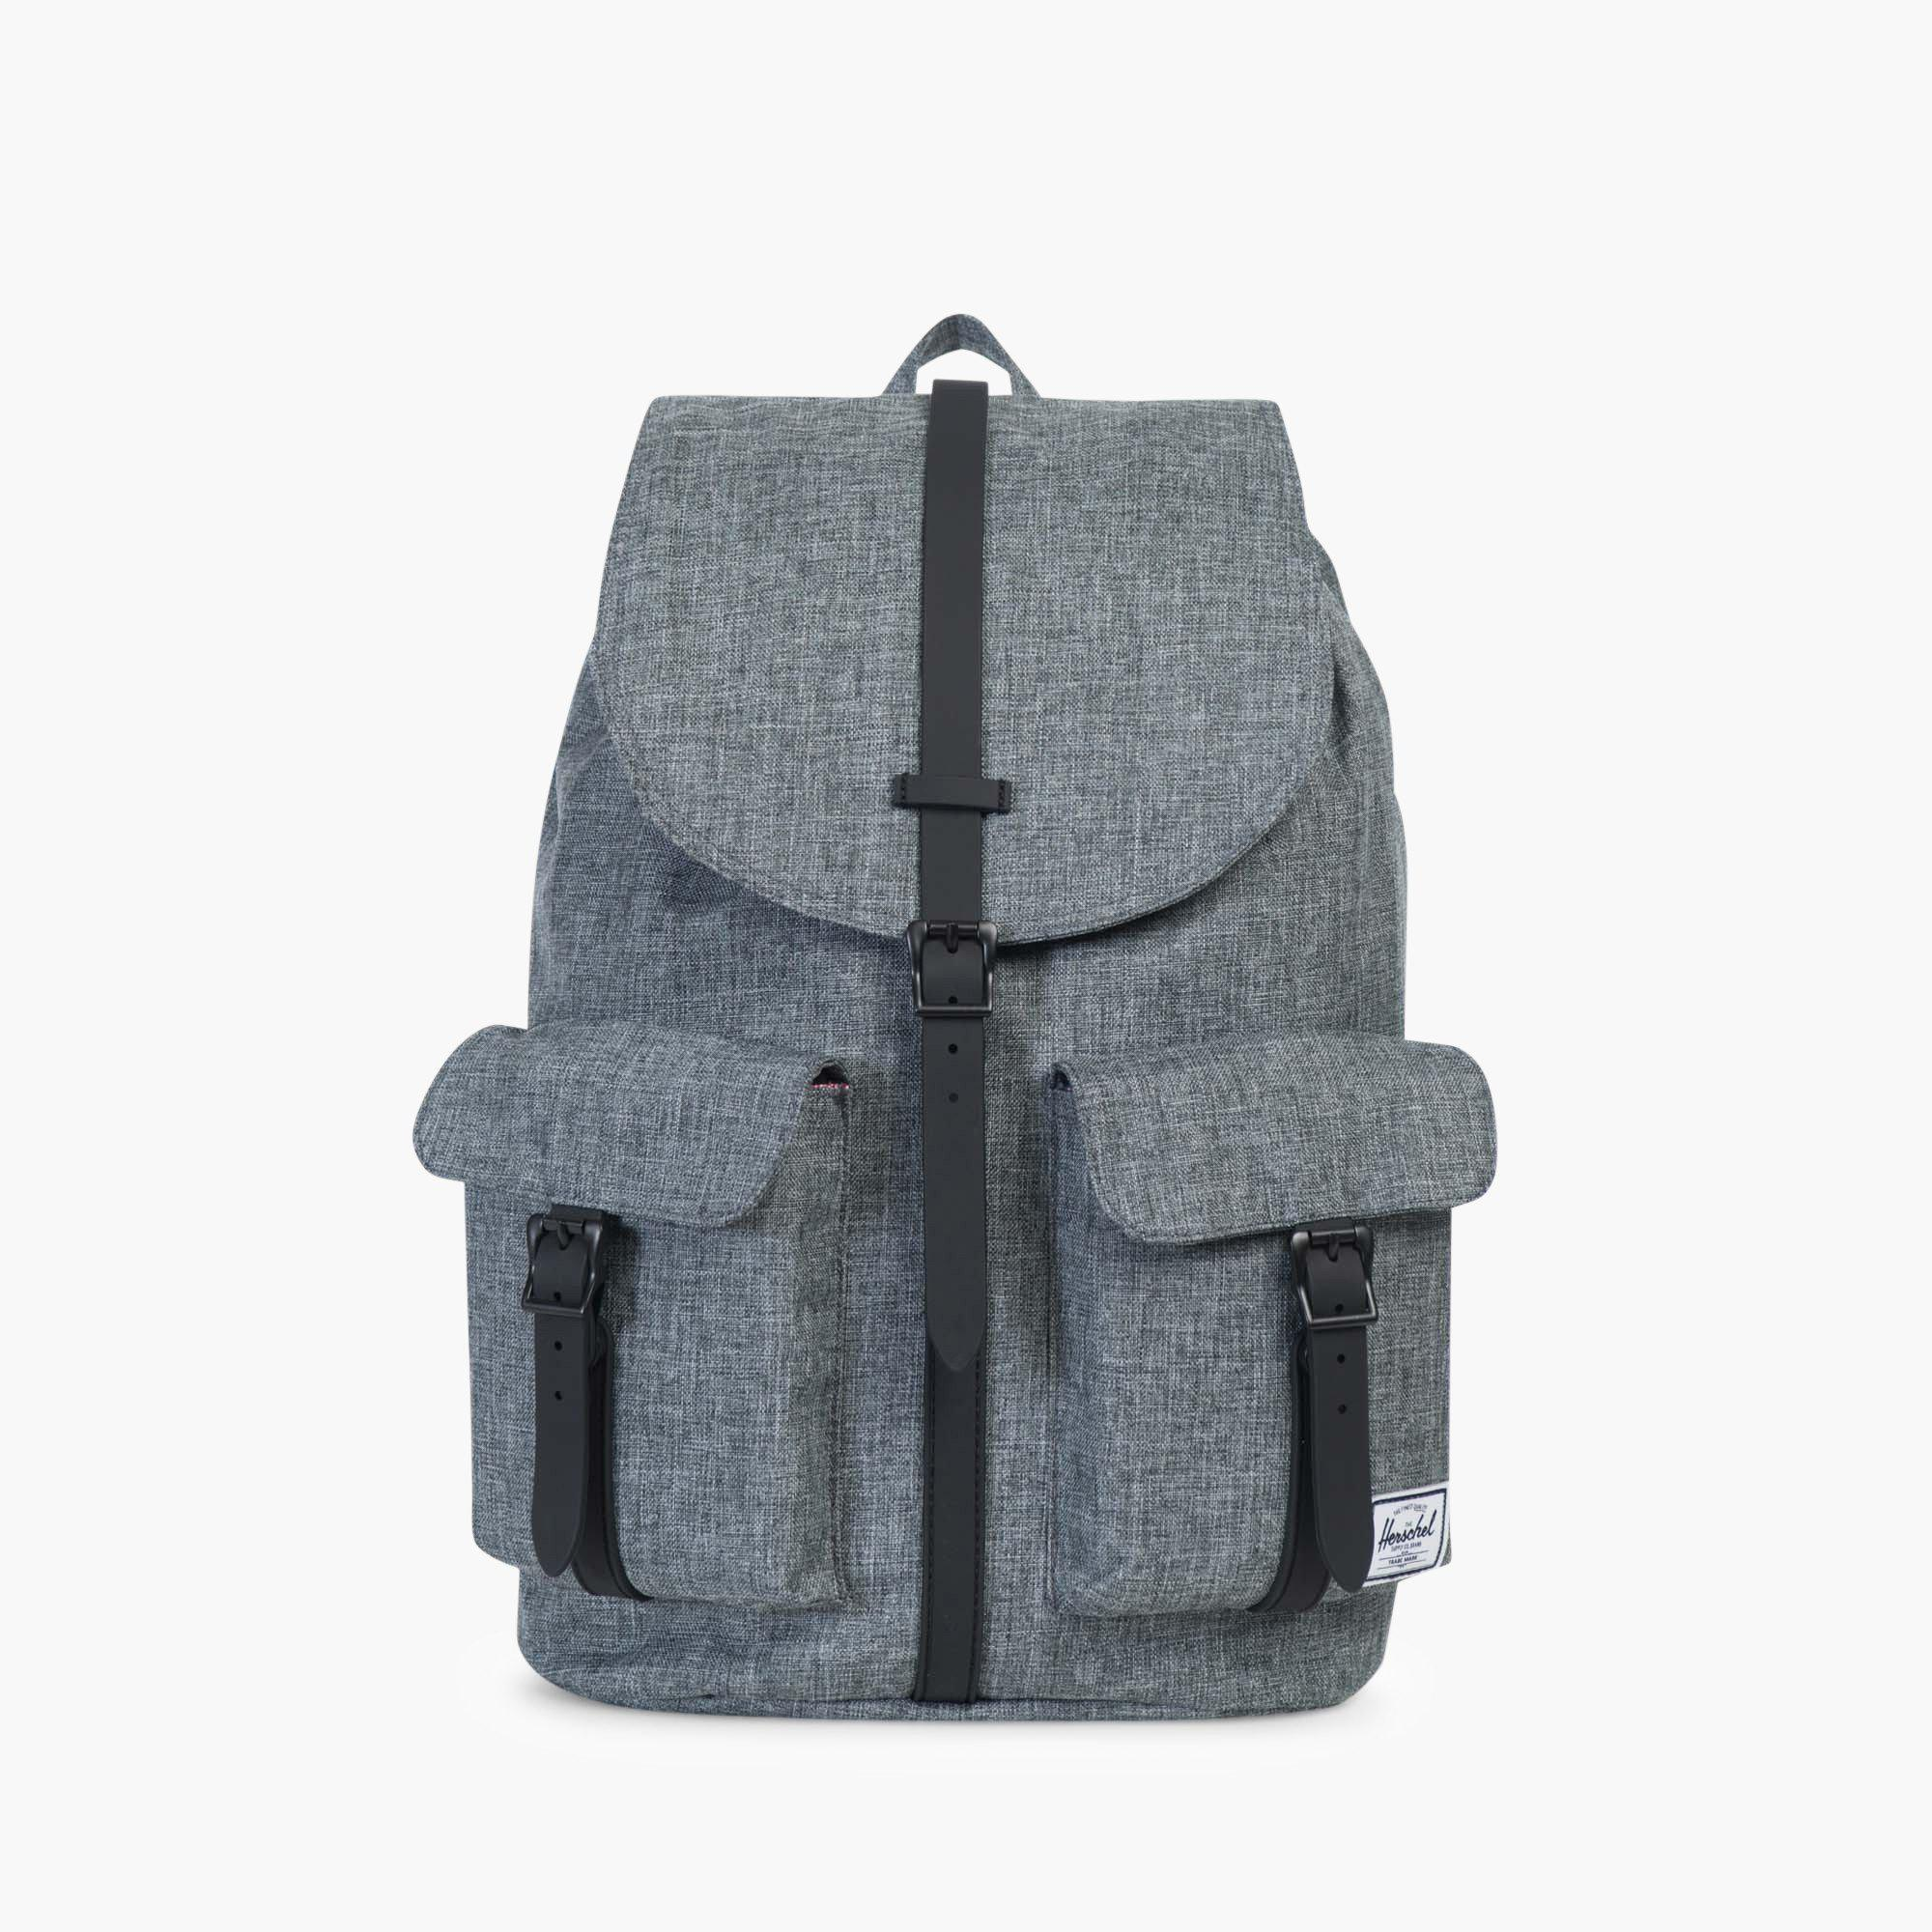 5c632fa7ae6 Lyst - Herschel Supply Co. Dawson Backpack Classics in Gray for Men